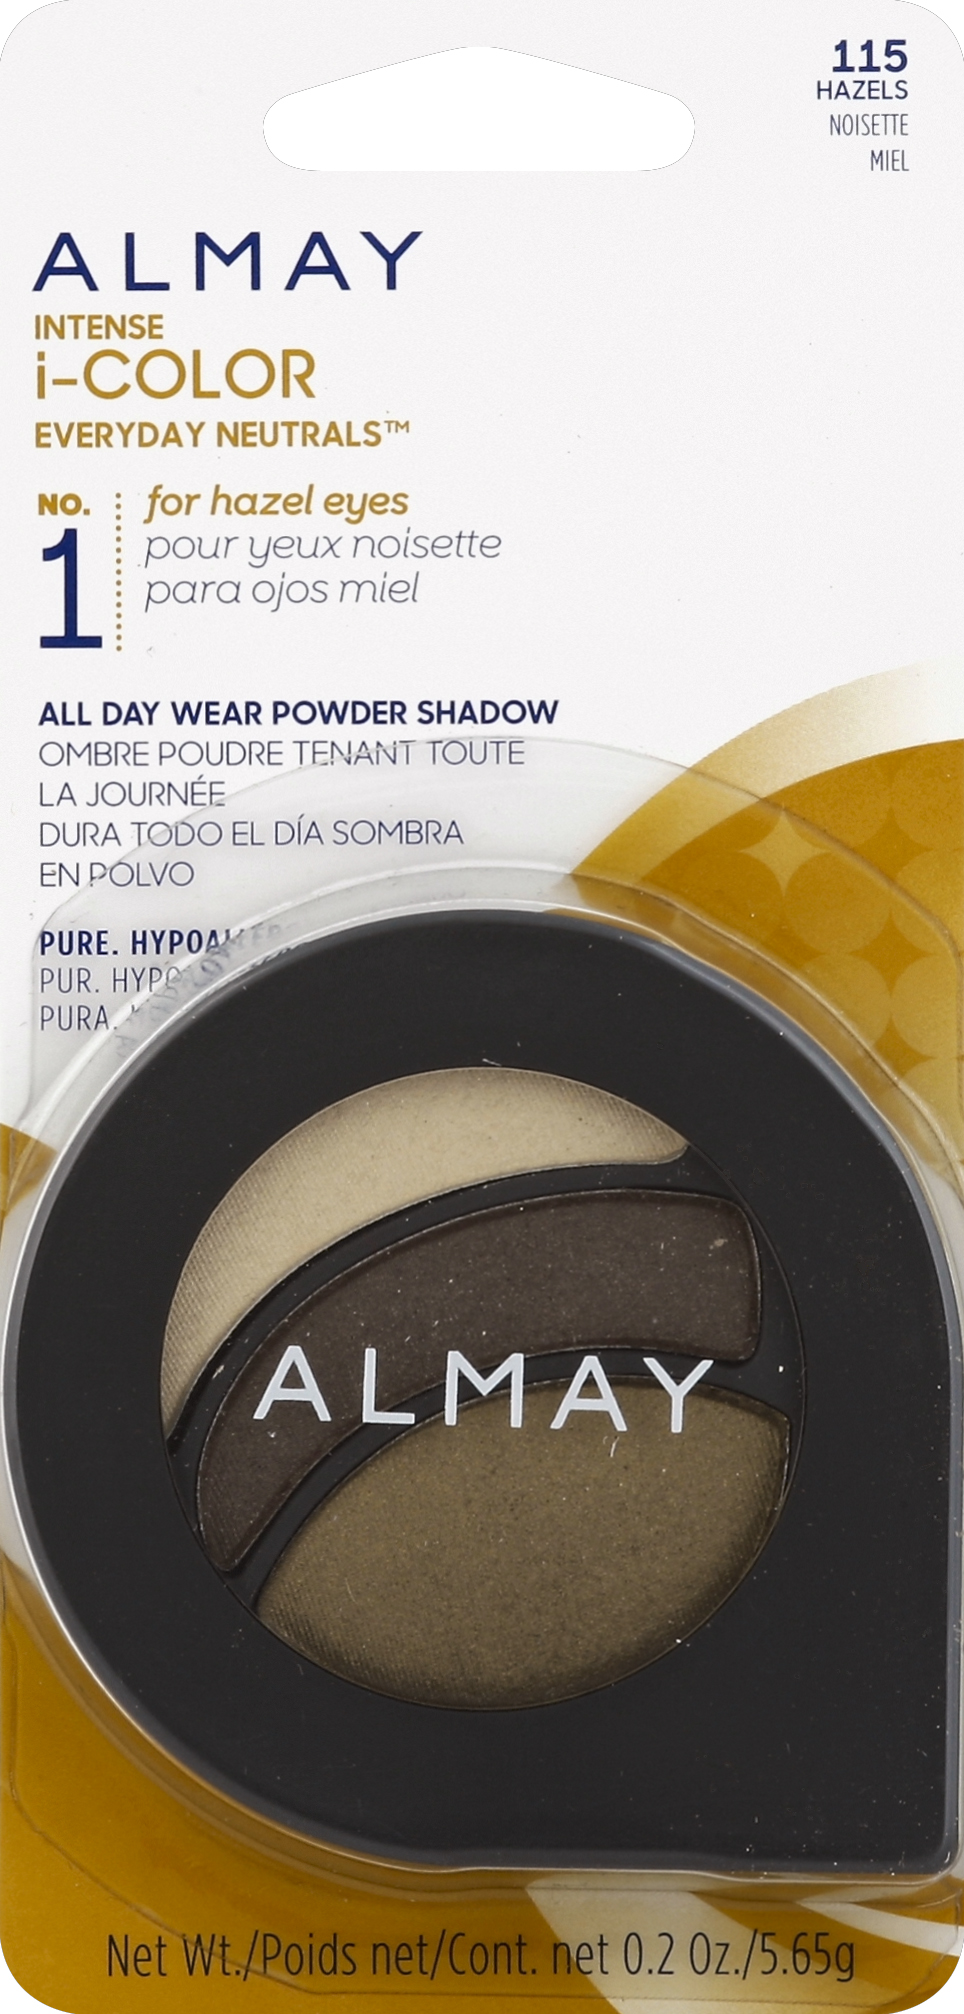 Almay Intense i-Color Everyday Neutrals Eye Shadow, Hazels 0.20 oz PartNumber: 015W008148356001P